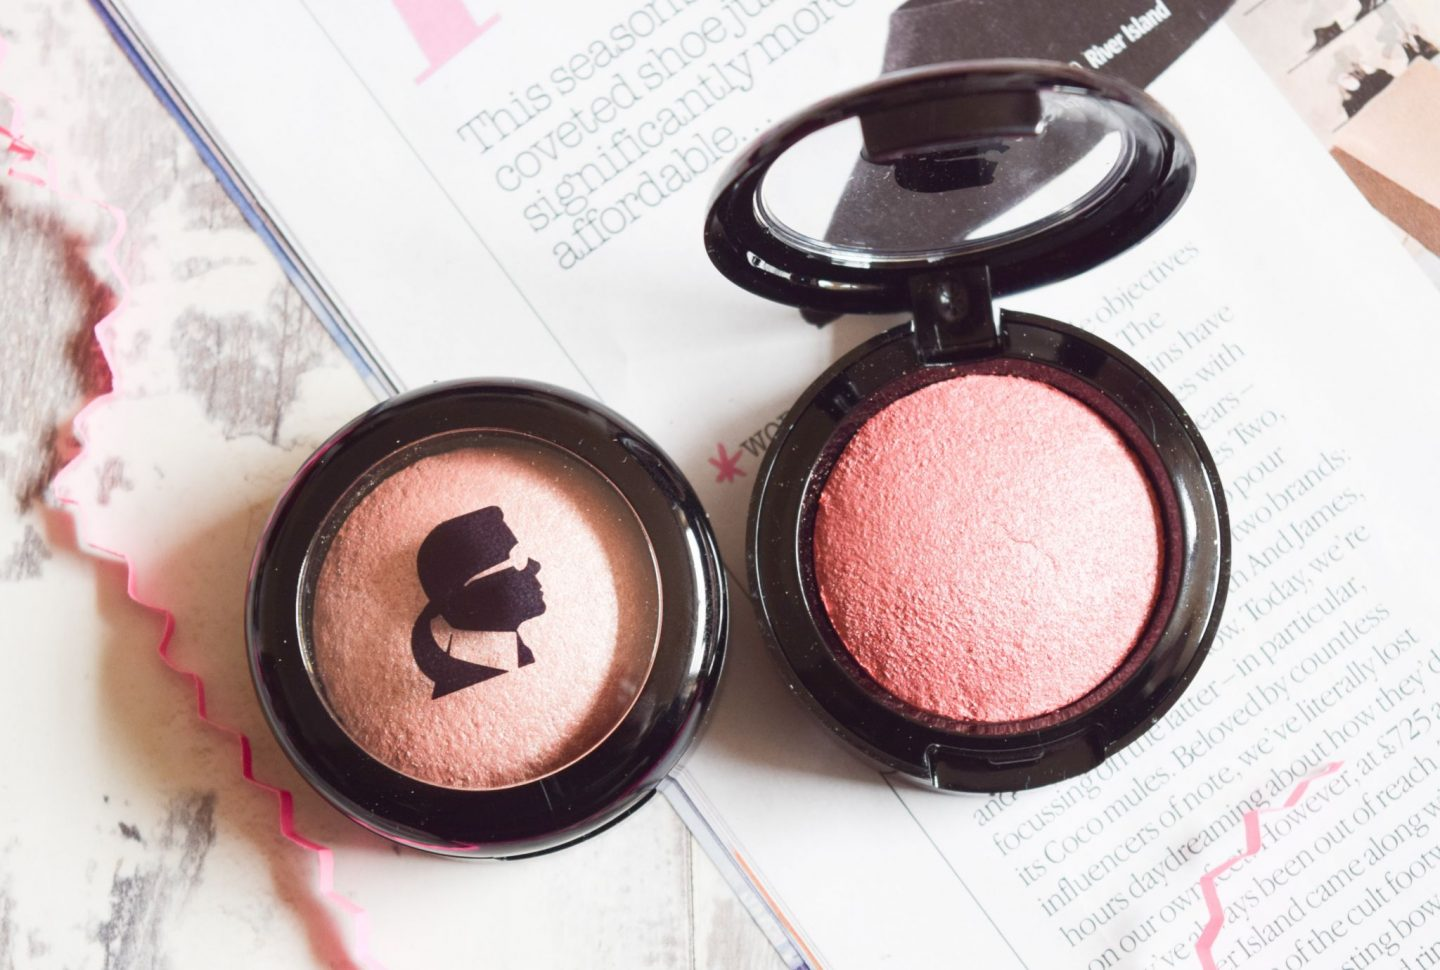 Model CO x Karl Lagerfeld Baked Blush by Model Co #19